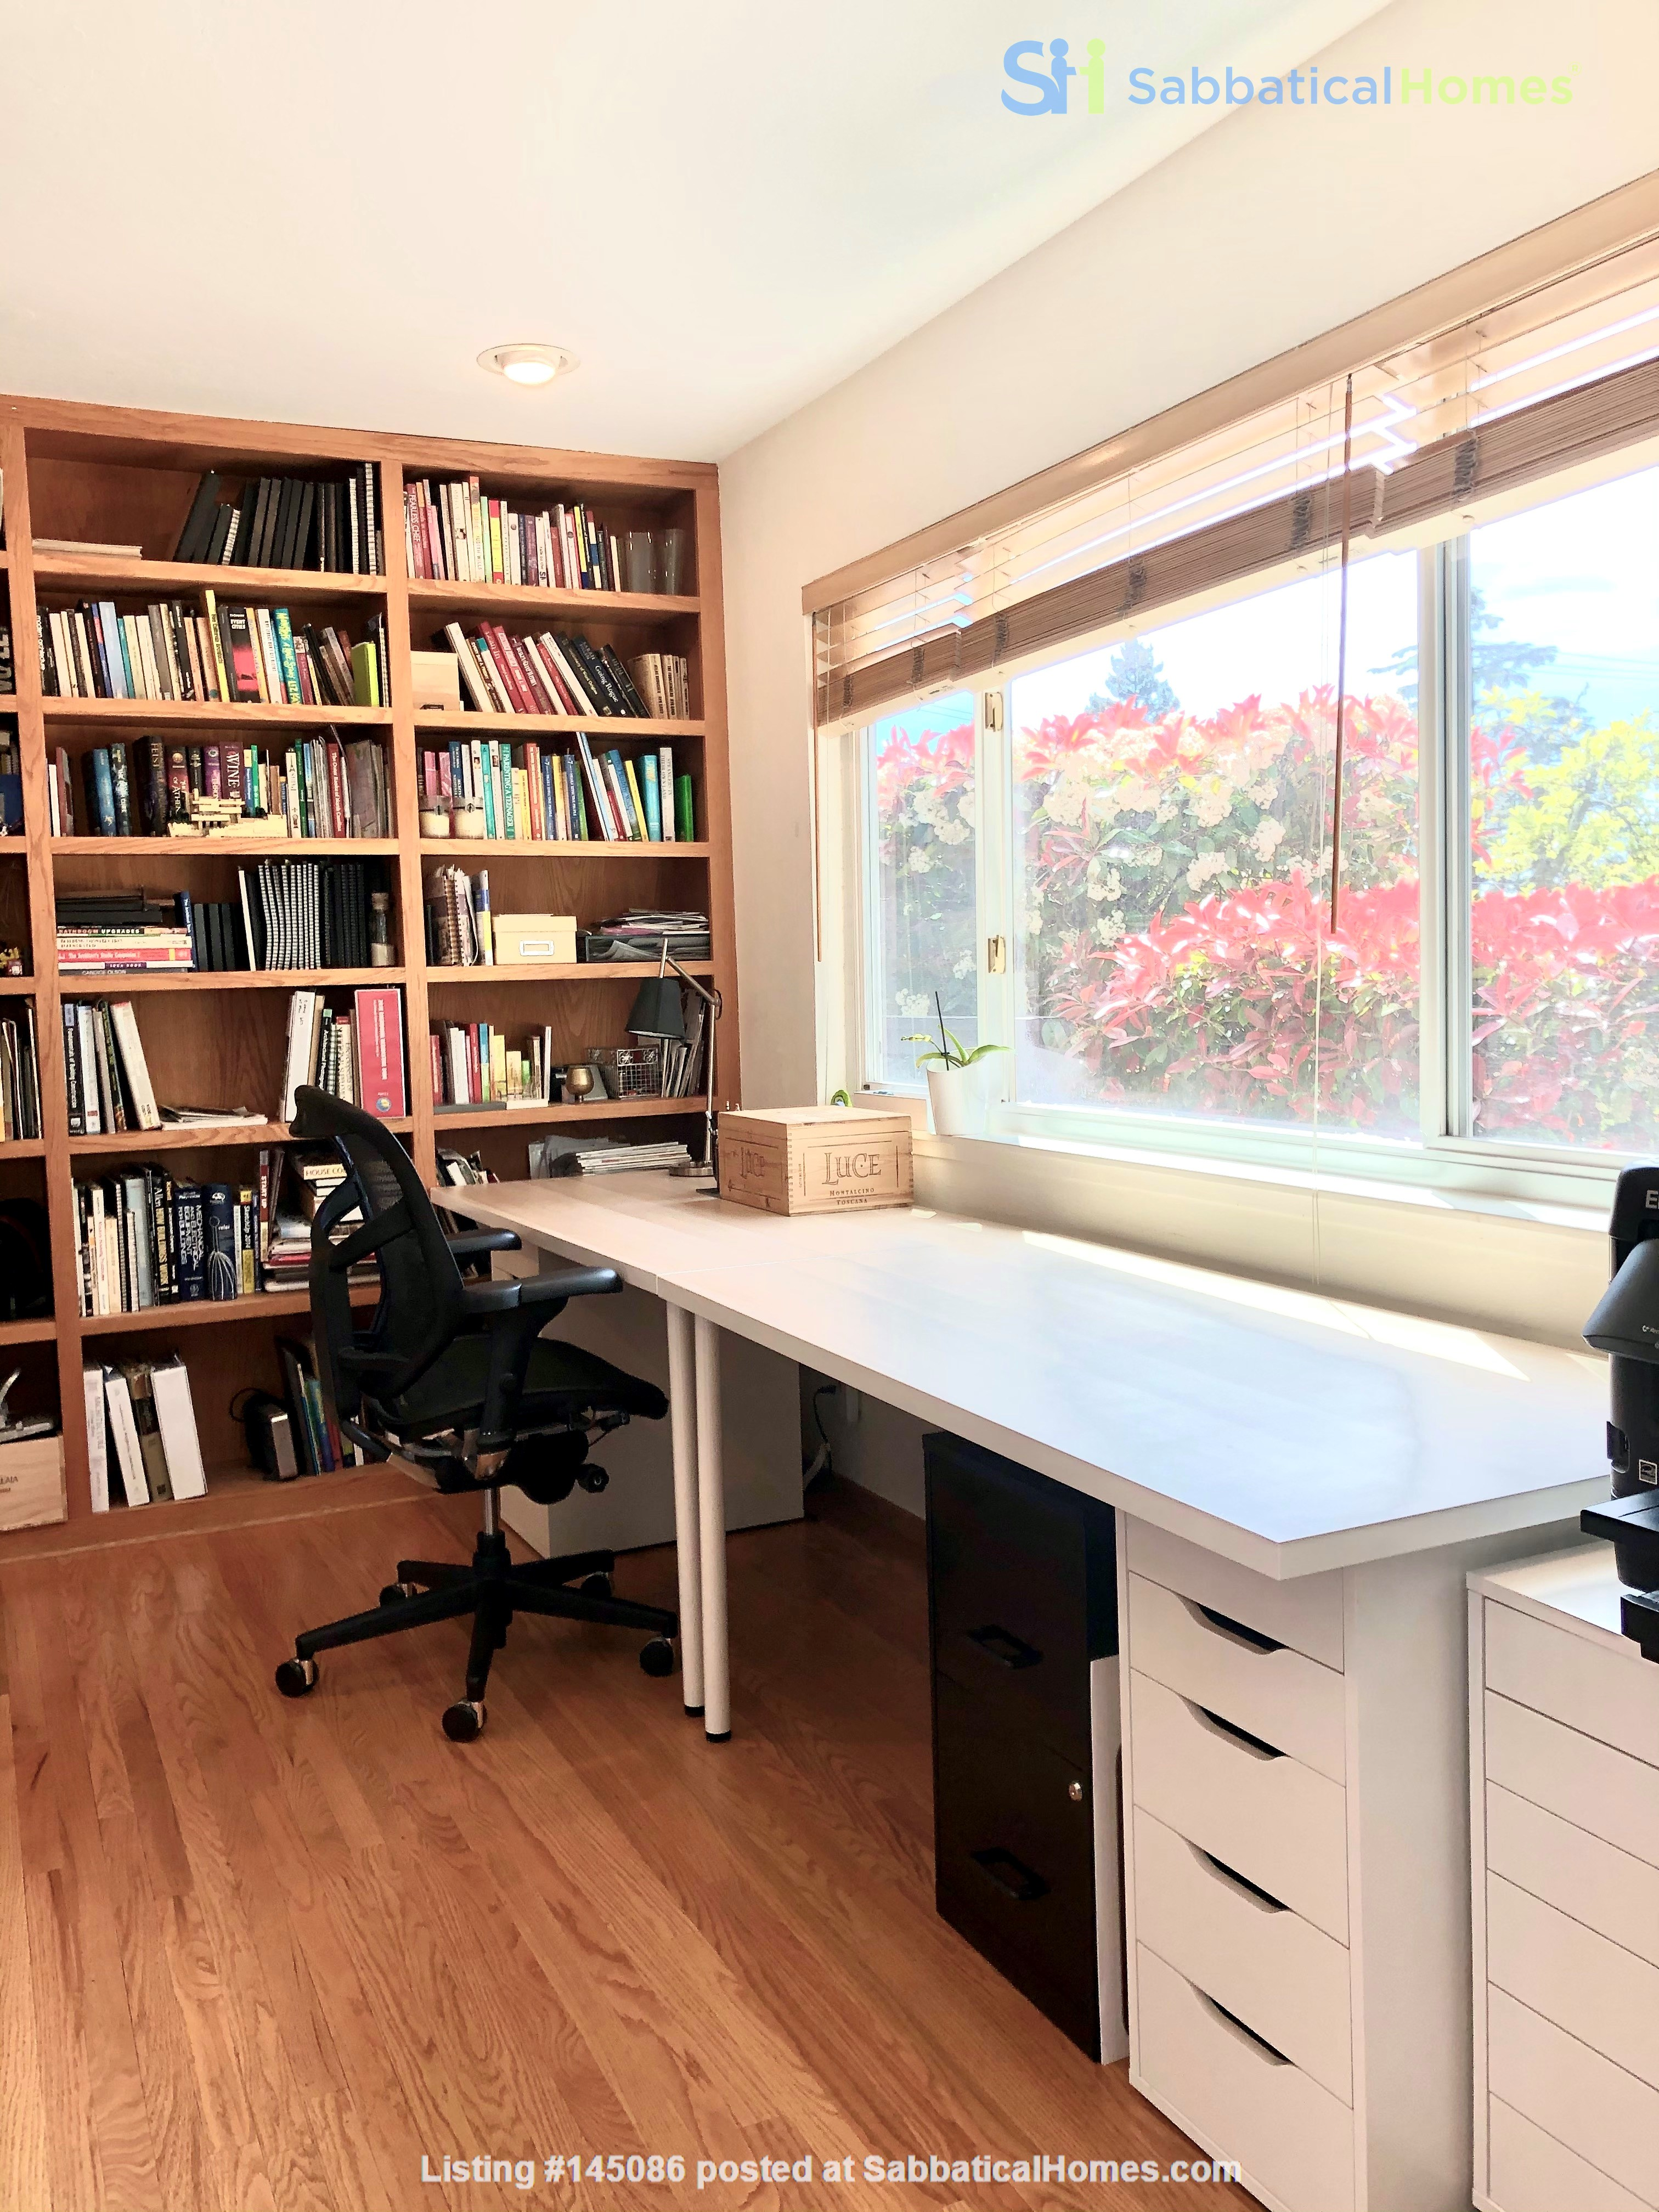 Spacious, Level-In, Quite Home for year lease in the Oakland Hills, CA Home Rental in Oakland, California, United States 5